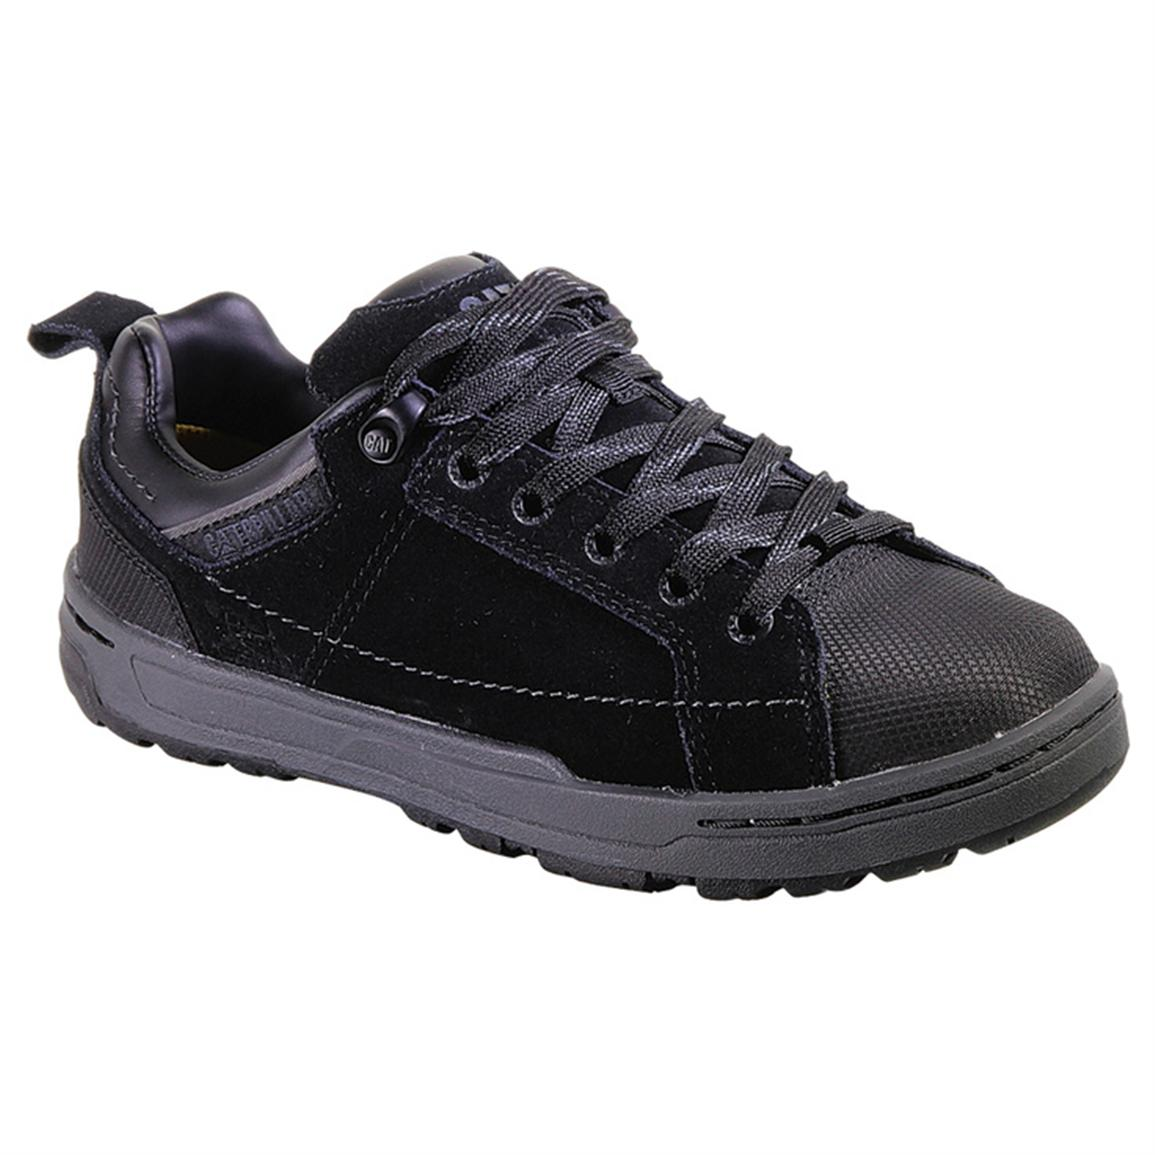 Womens Black Work Shoes